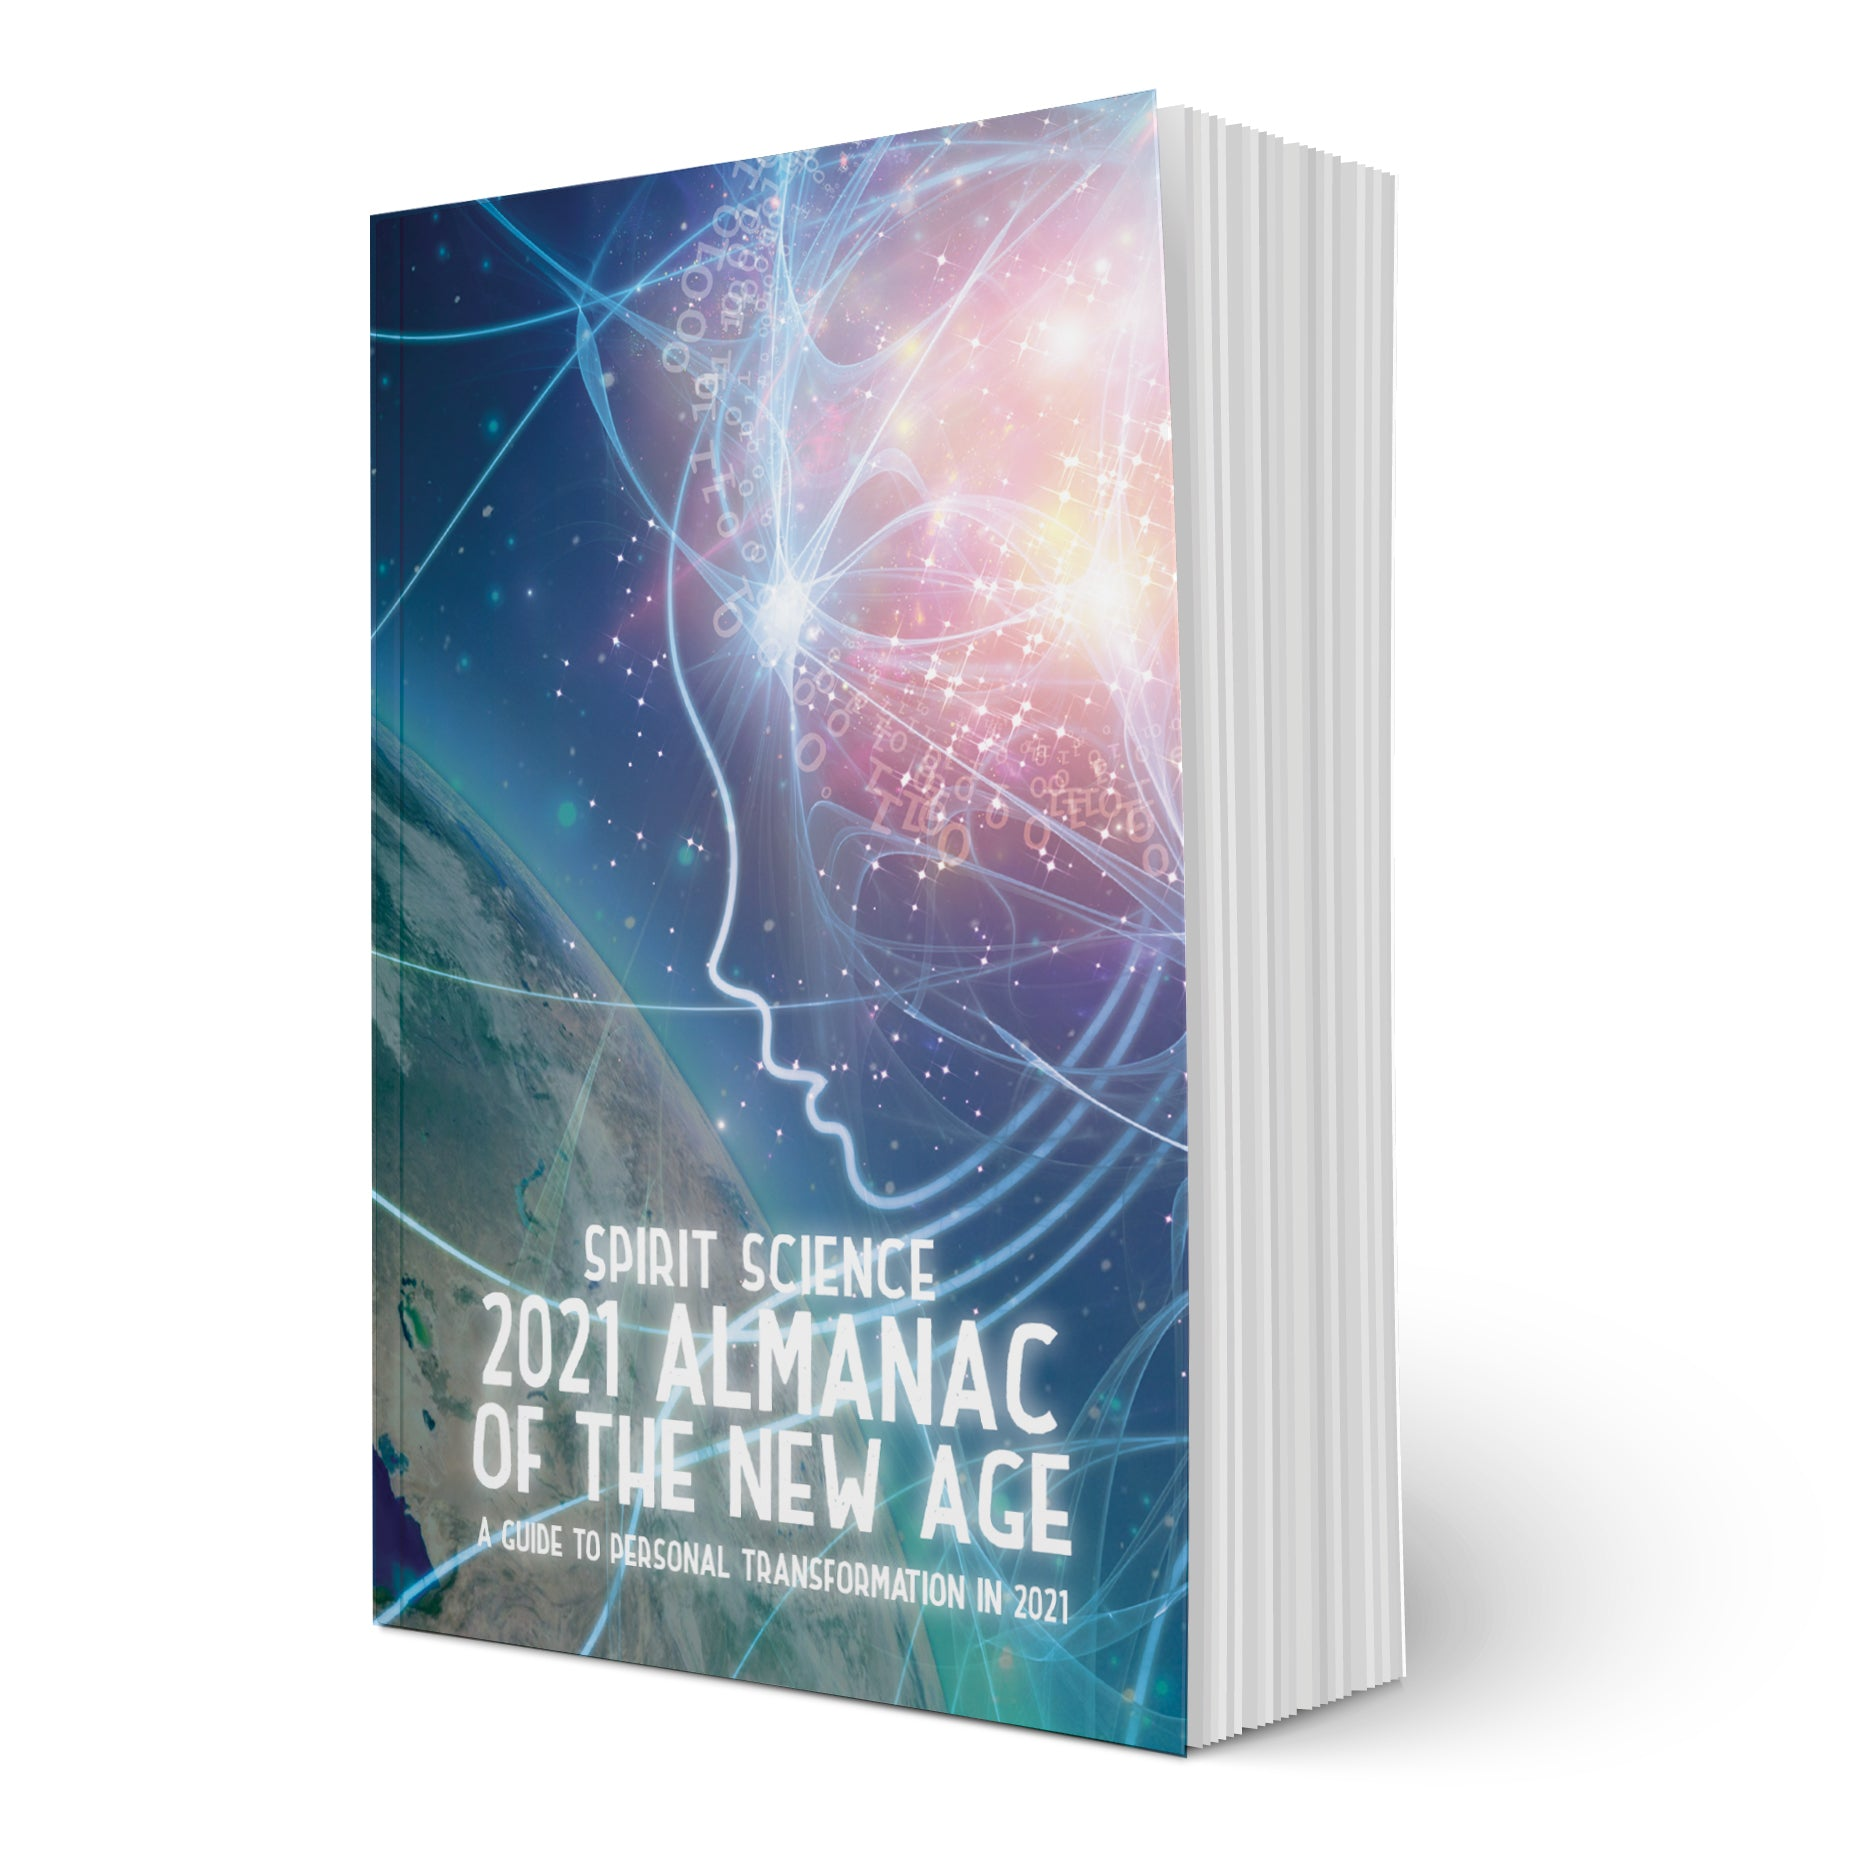 Spirit Science 2021 Almanac of the New Age